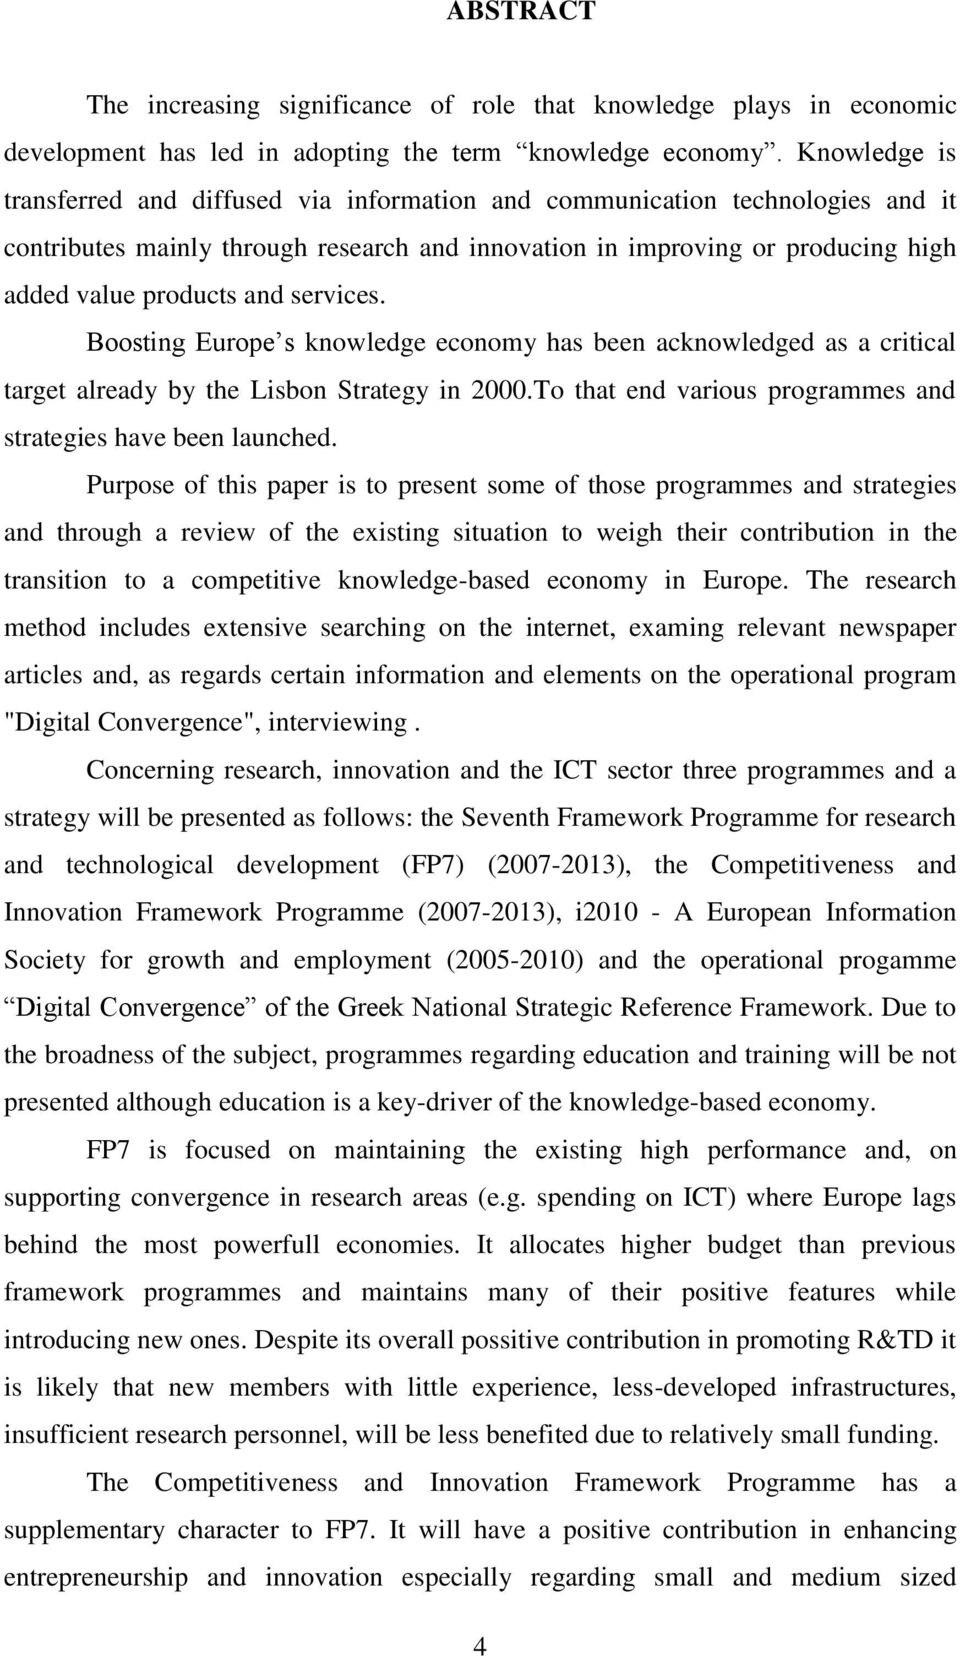 services. Boosting Europe s knowledge economy has been acknowledged as a critical target already by the Lisbon Strategy in 2000.To that end various programmes and strategies have been launched.